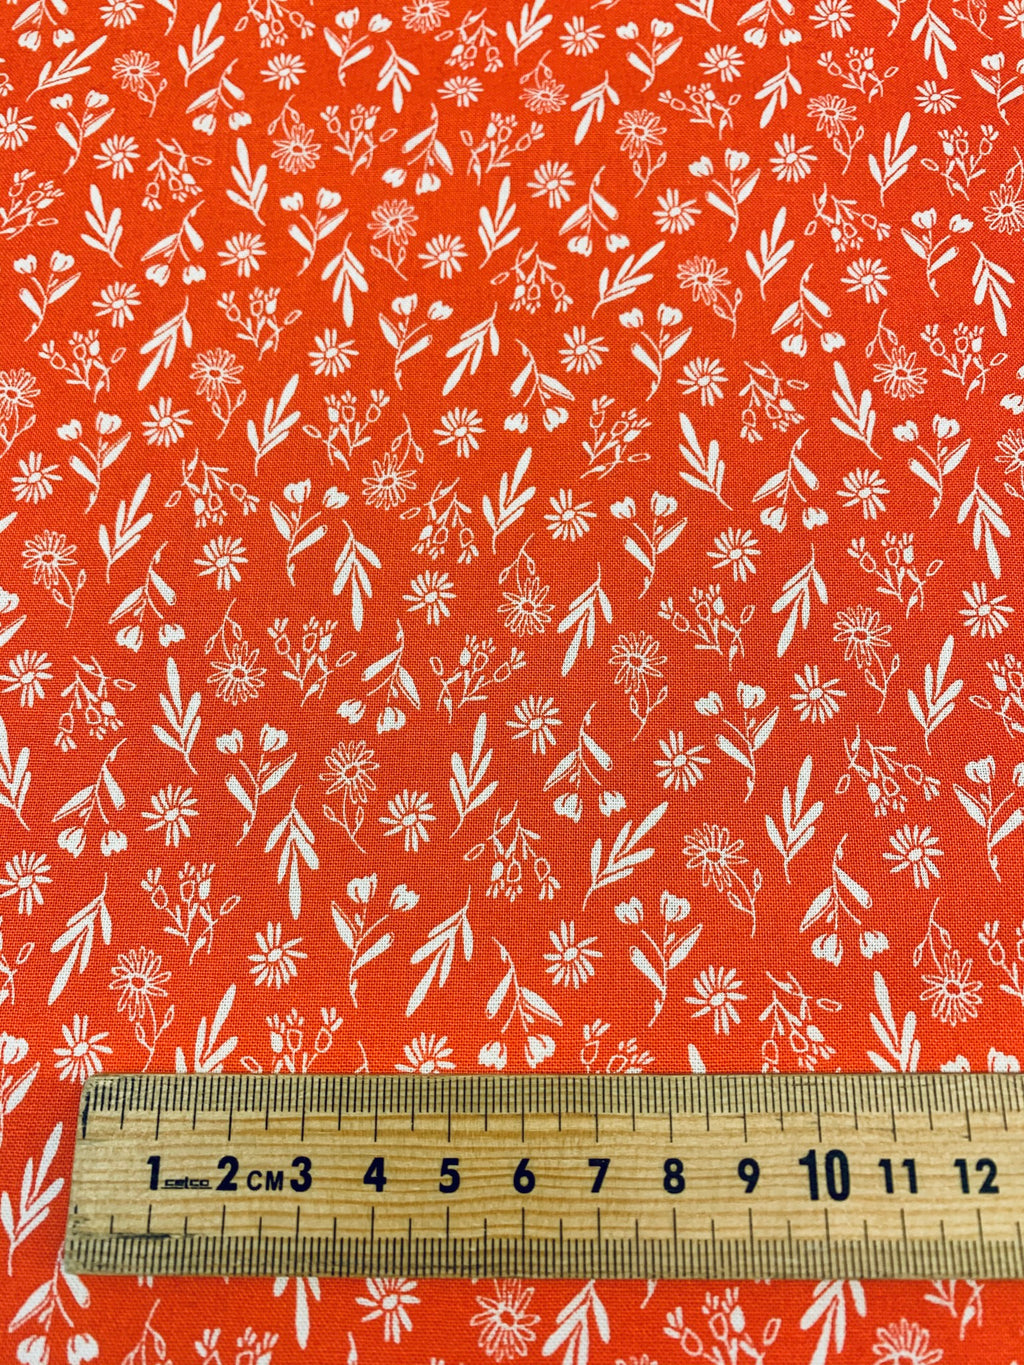 Moda Summer Sweet cotton print